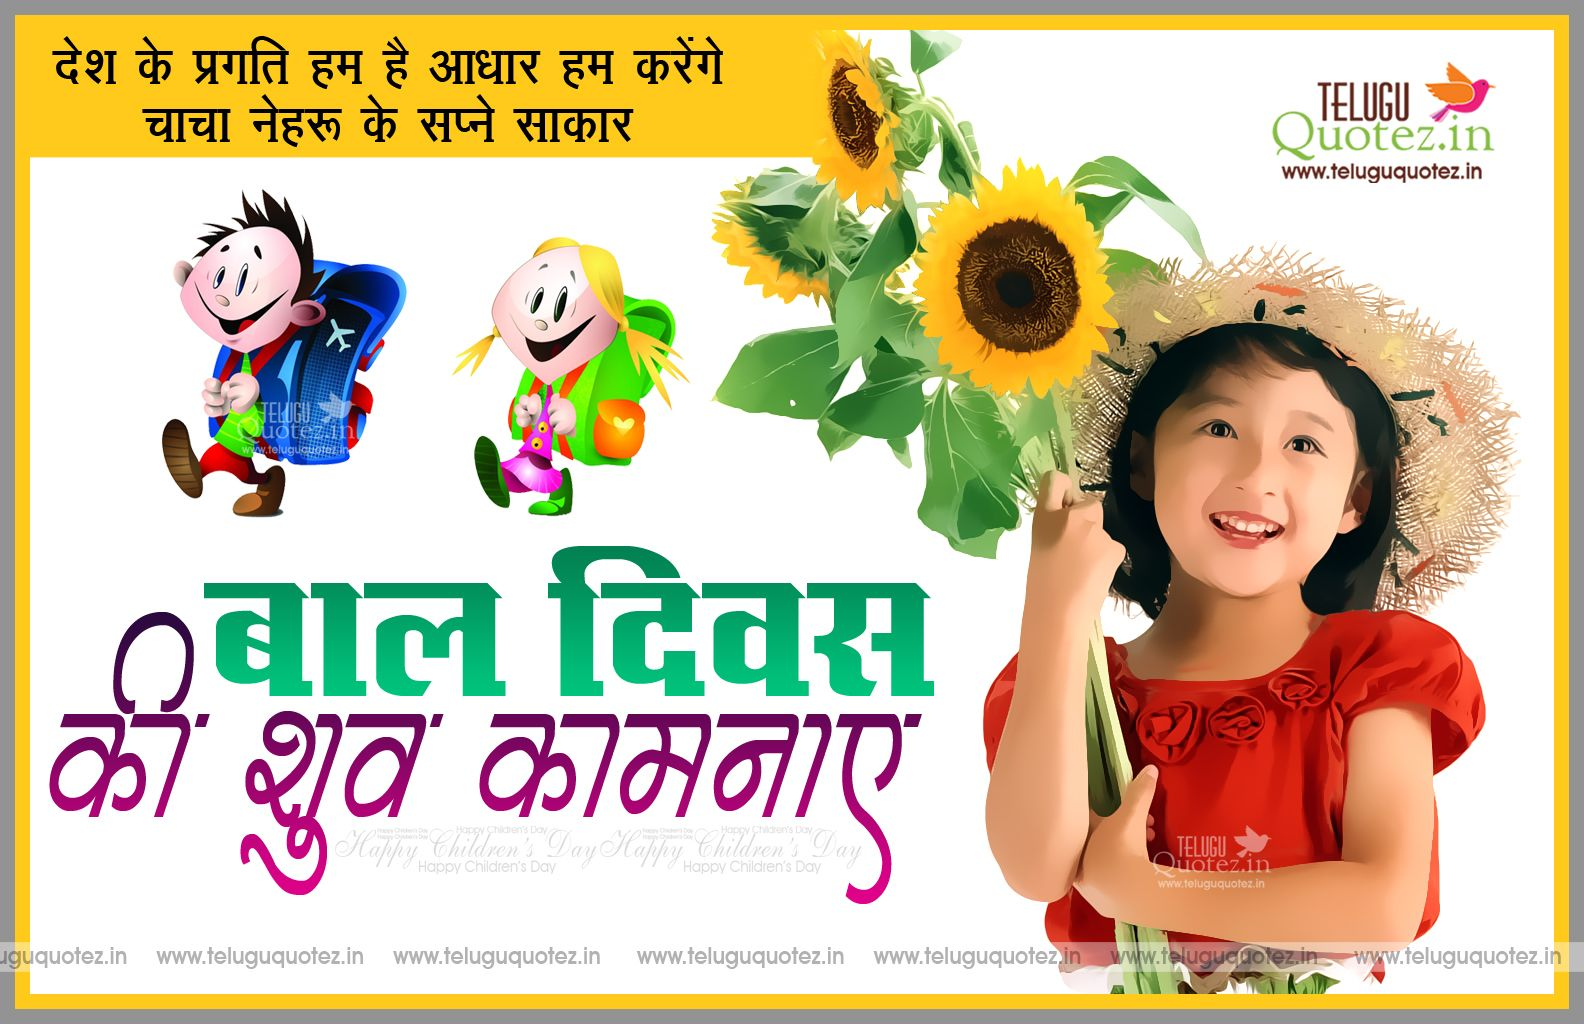 Happy Childrens Day Hindi Shayari Quotes And Sayings Happy